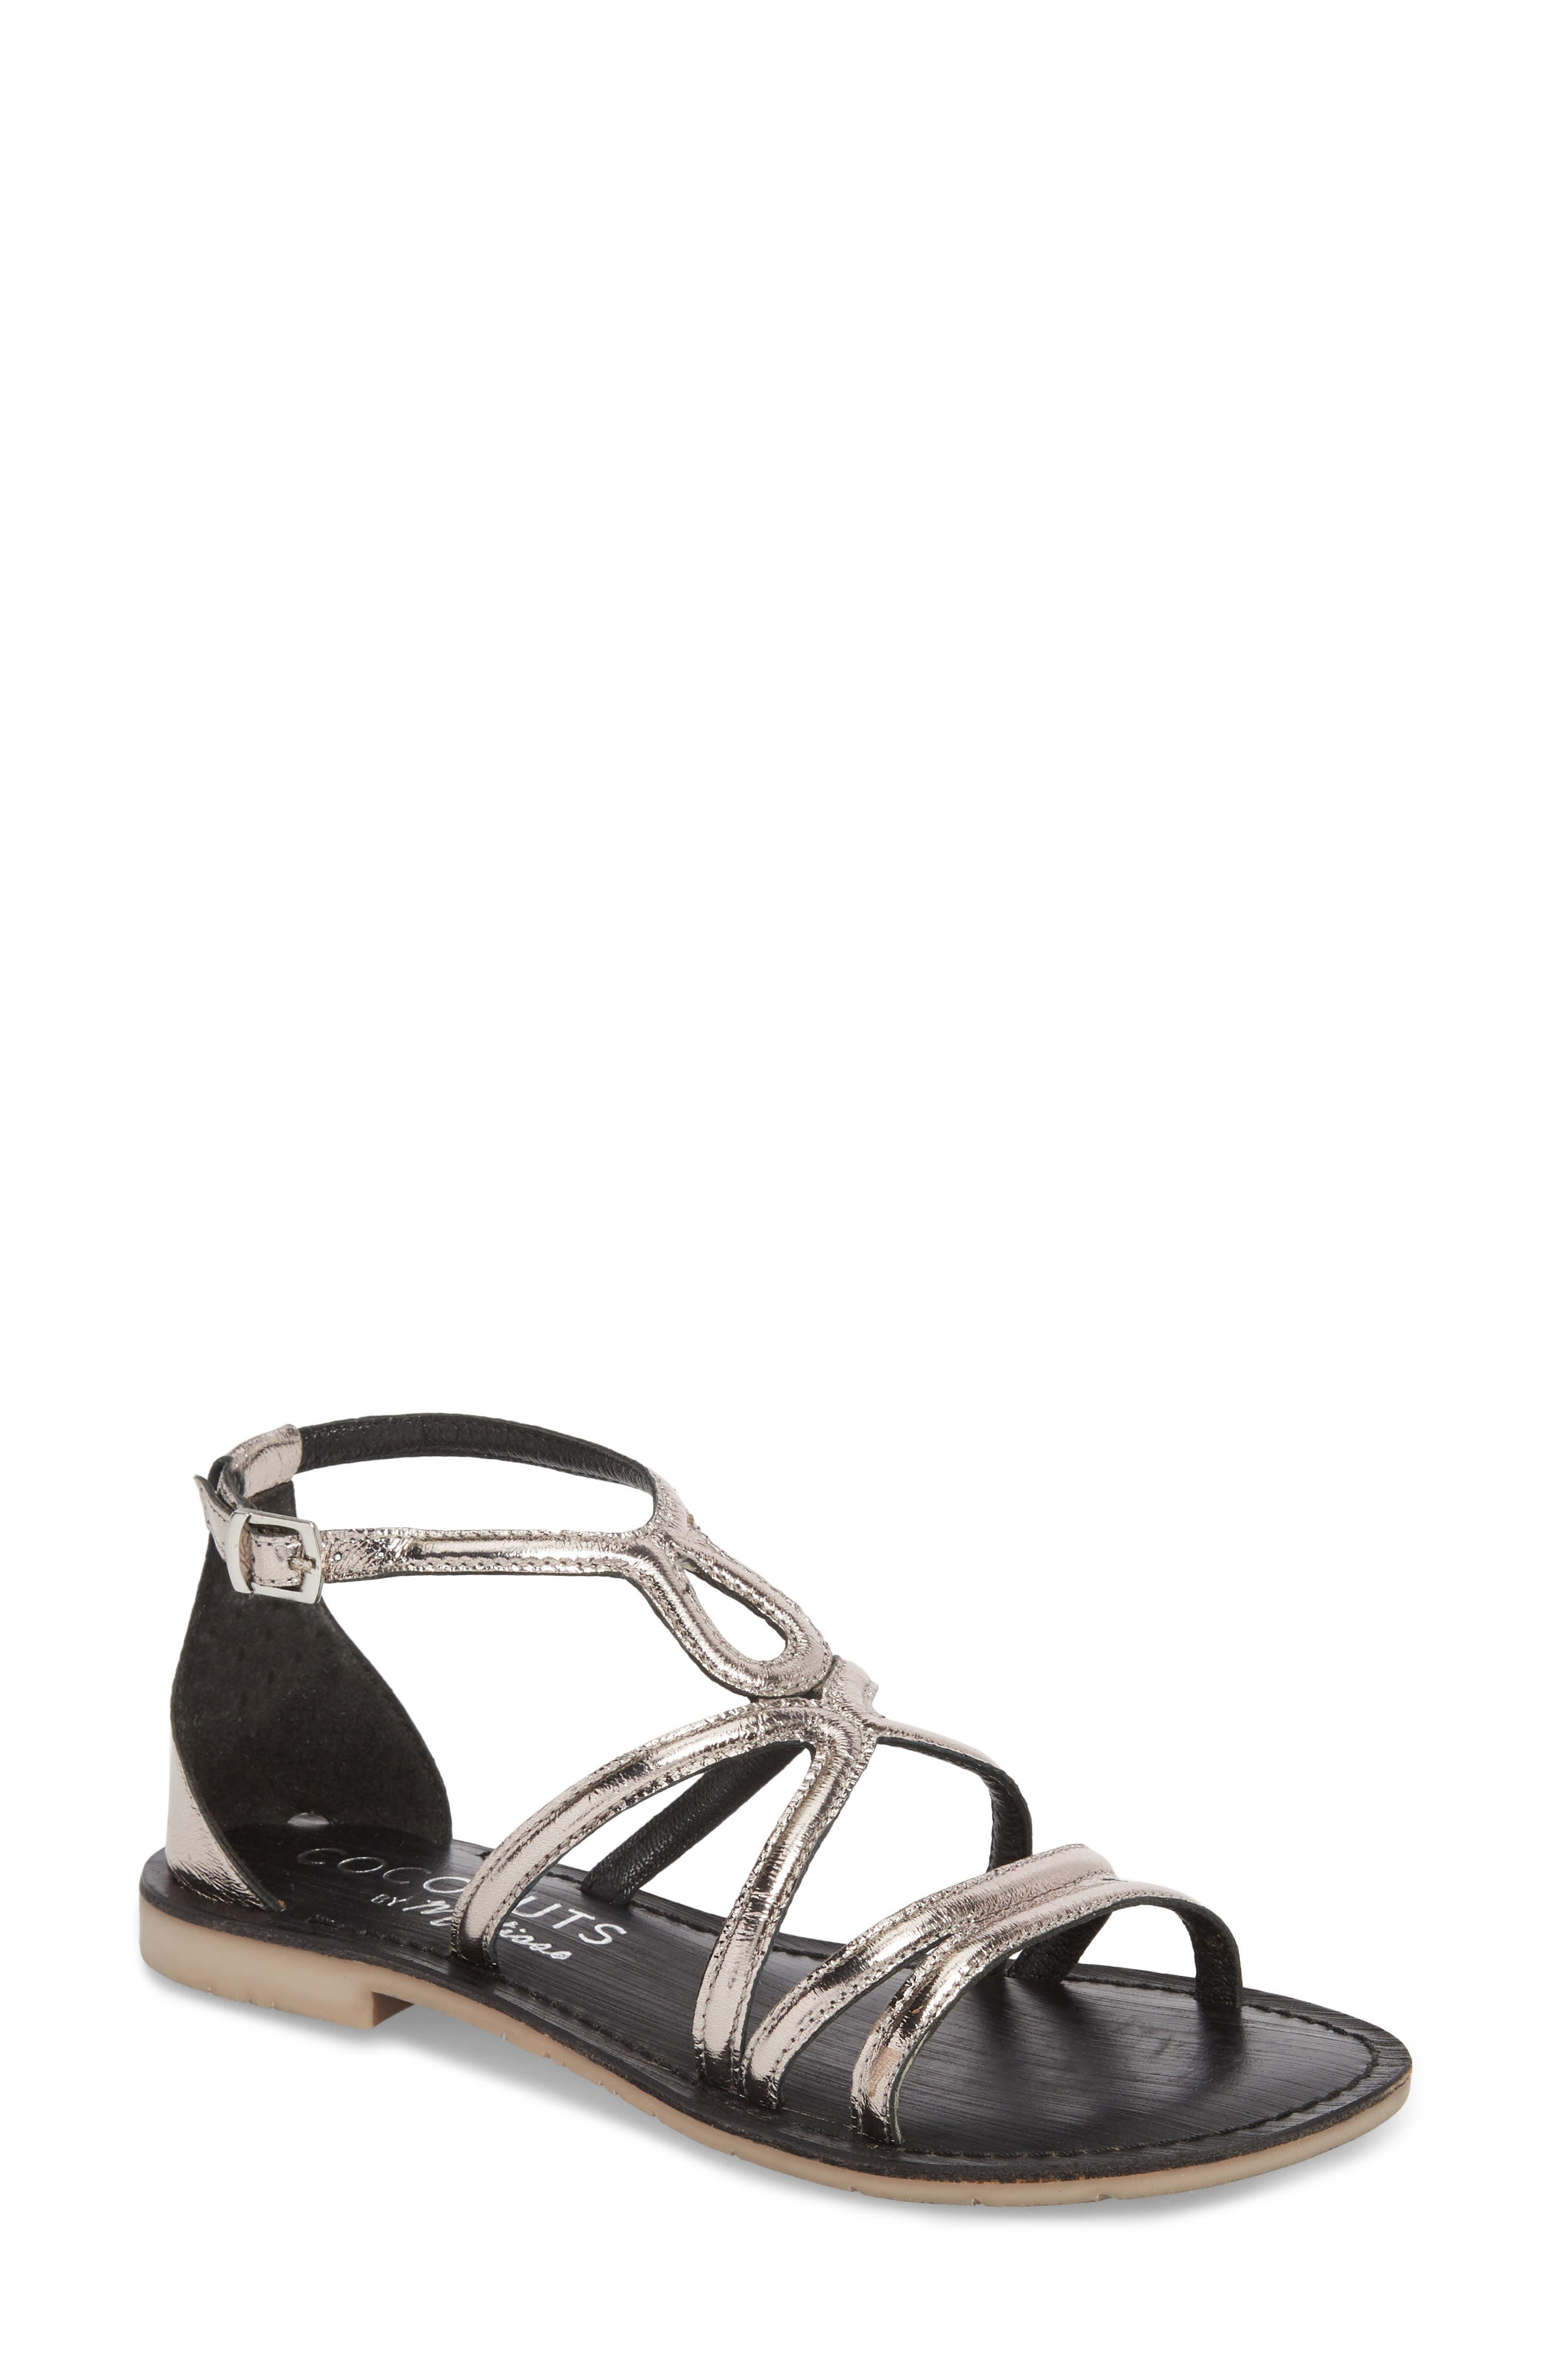 Palm Beach Metallic Sandal,                         Main,                         color, Pewter Leather